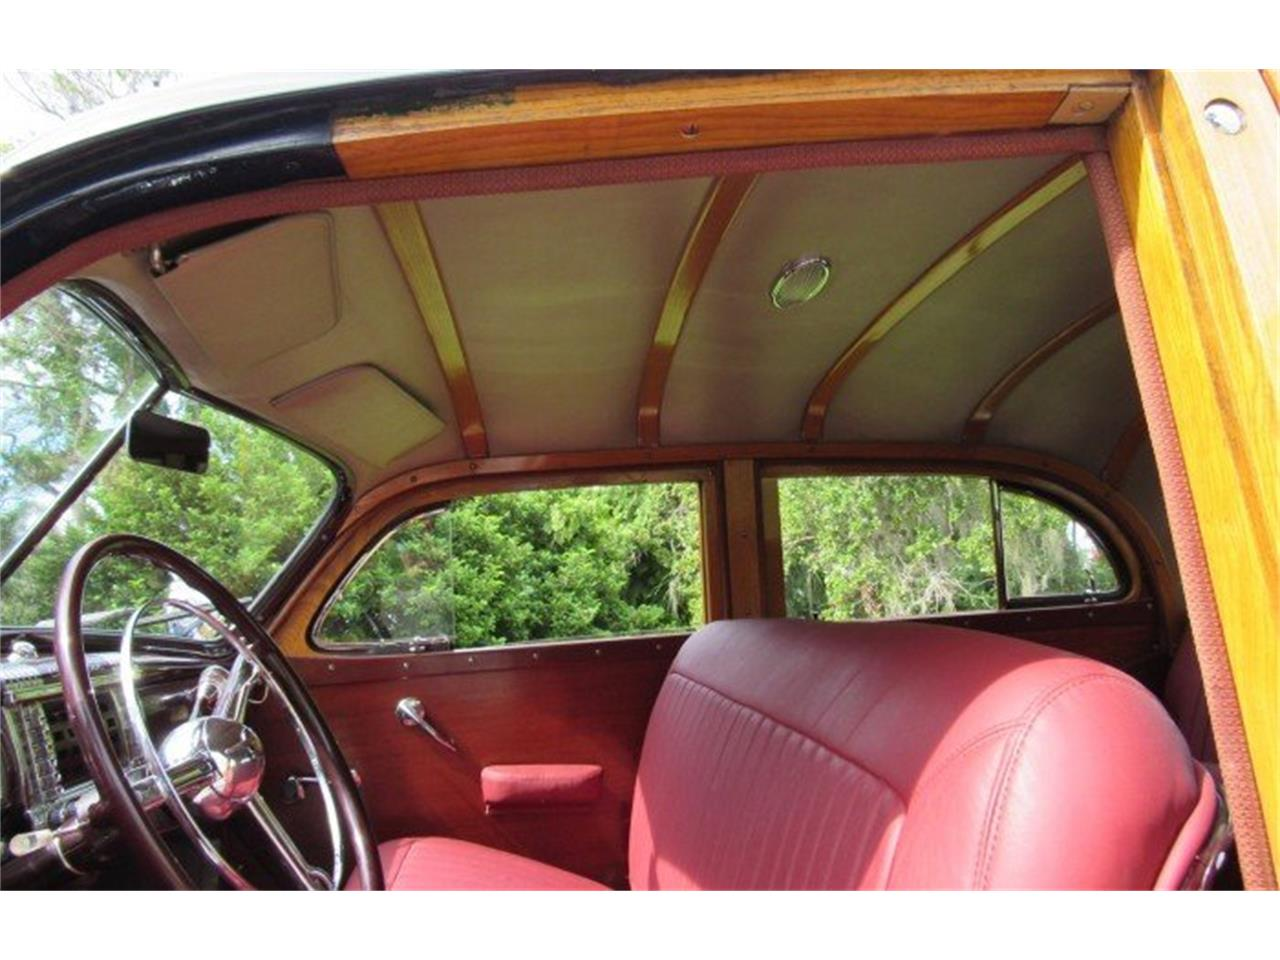 Large Picture of '48 Chrysler Town & Country Auction Vehicle Offered by Premier Auction Group - PH12